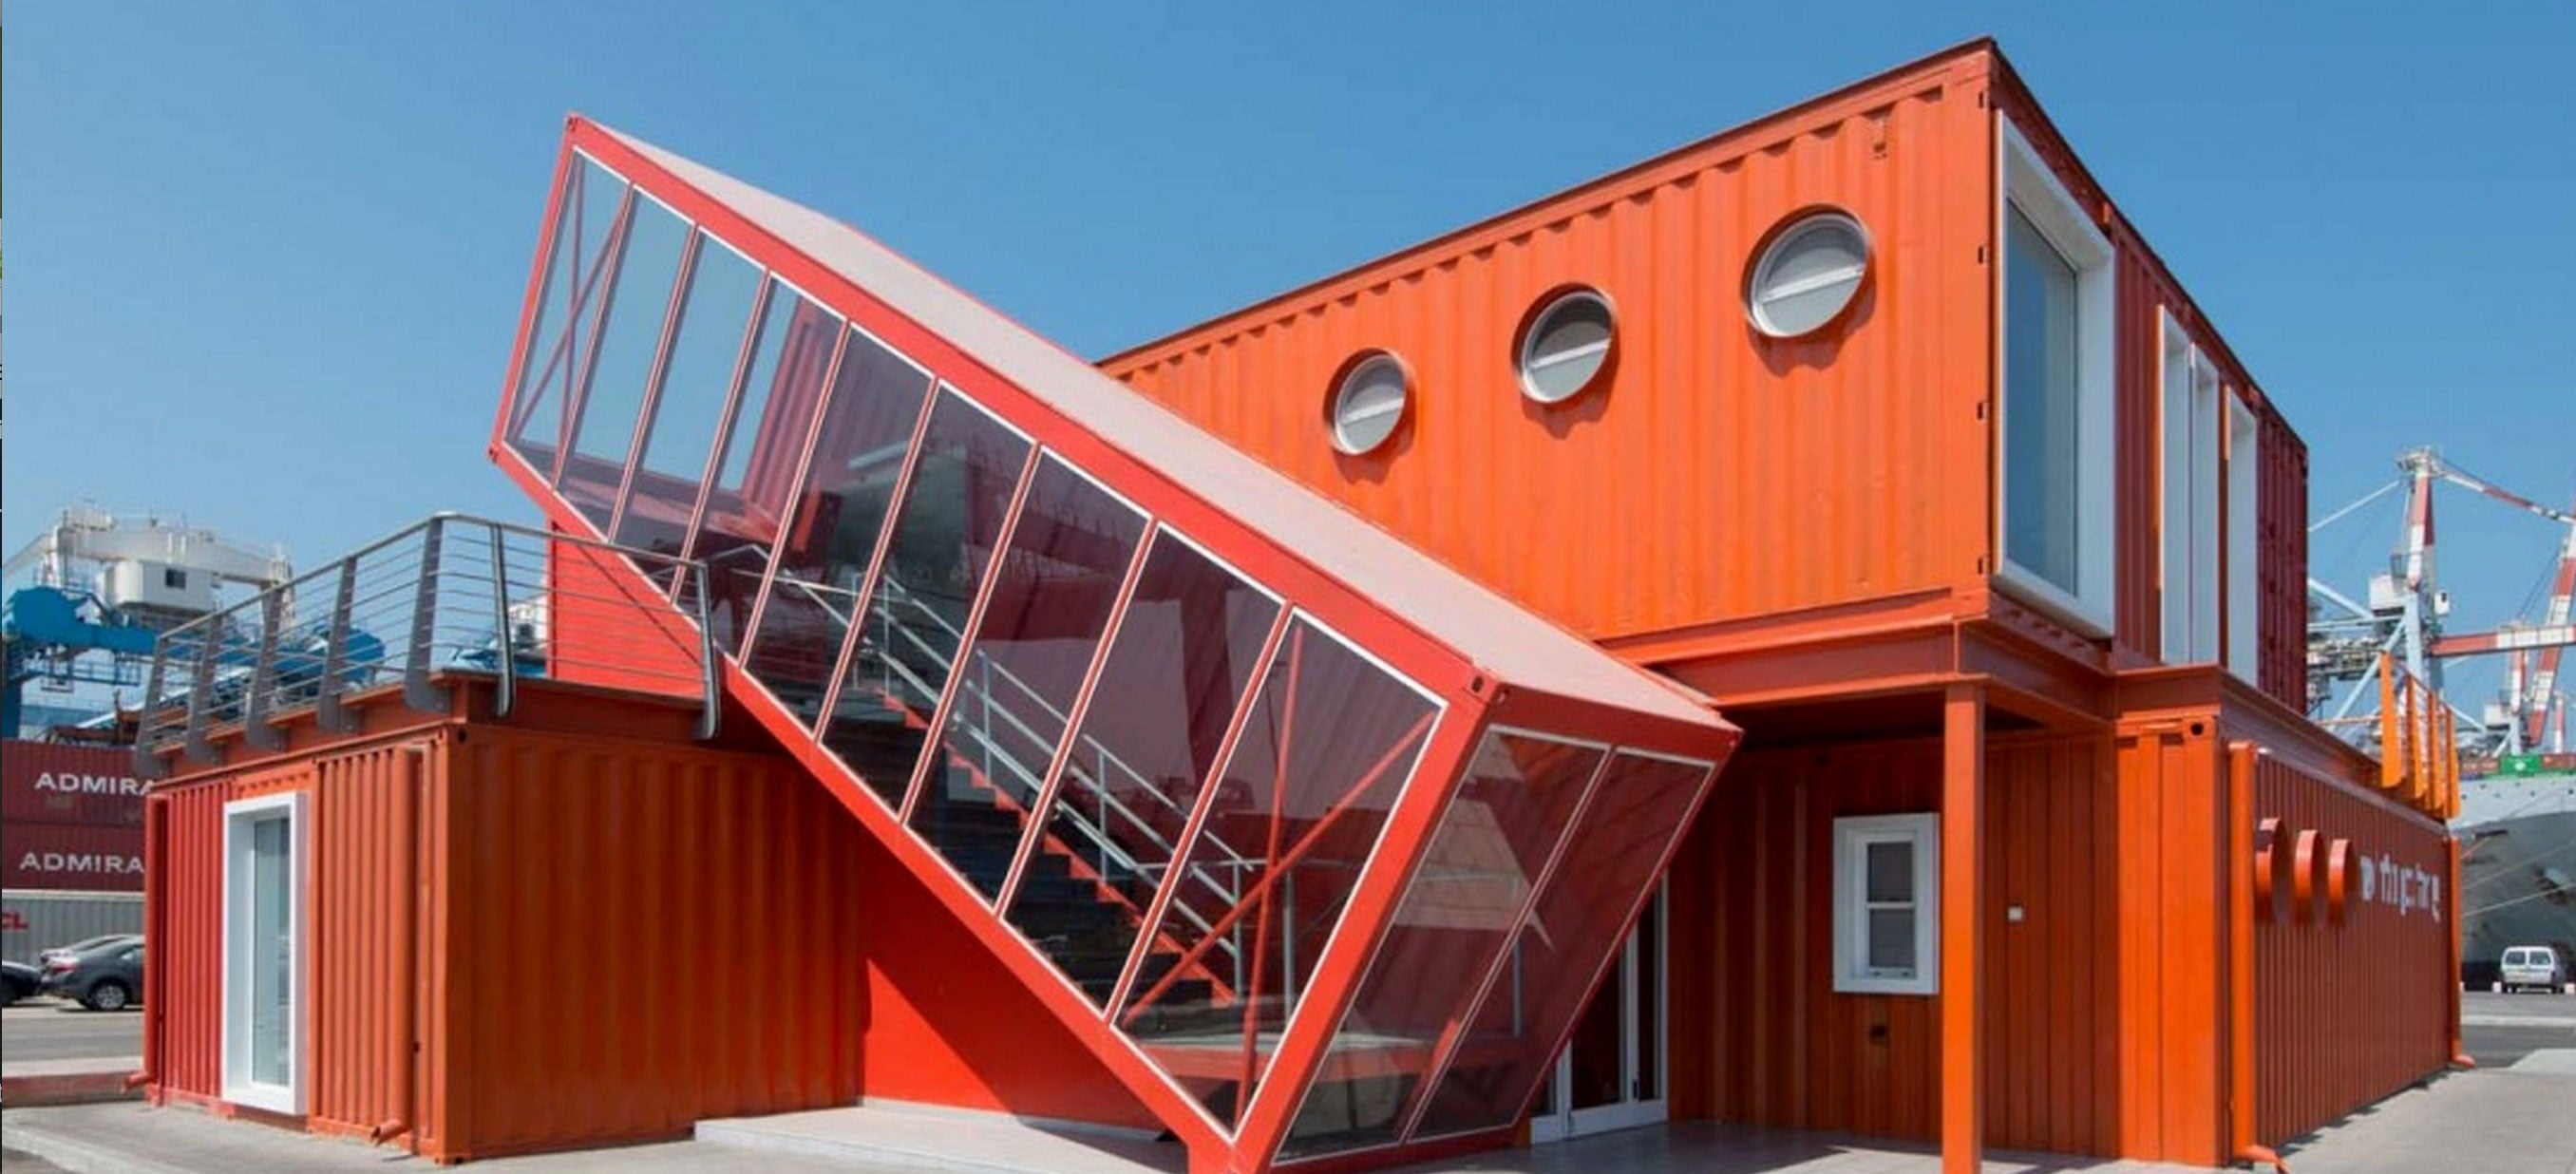 shipping container offices are right at home on an industrial